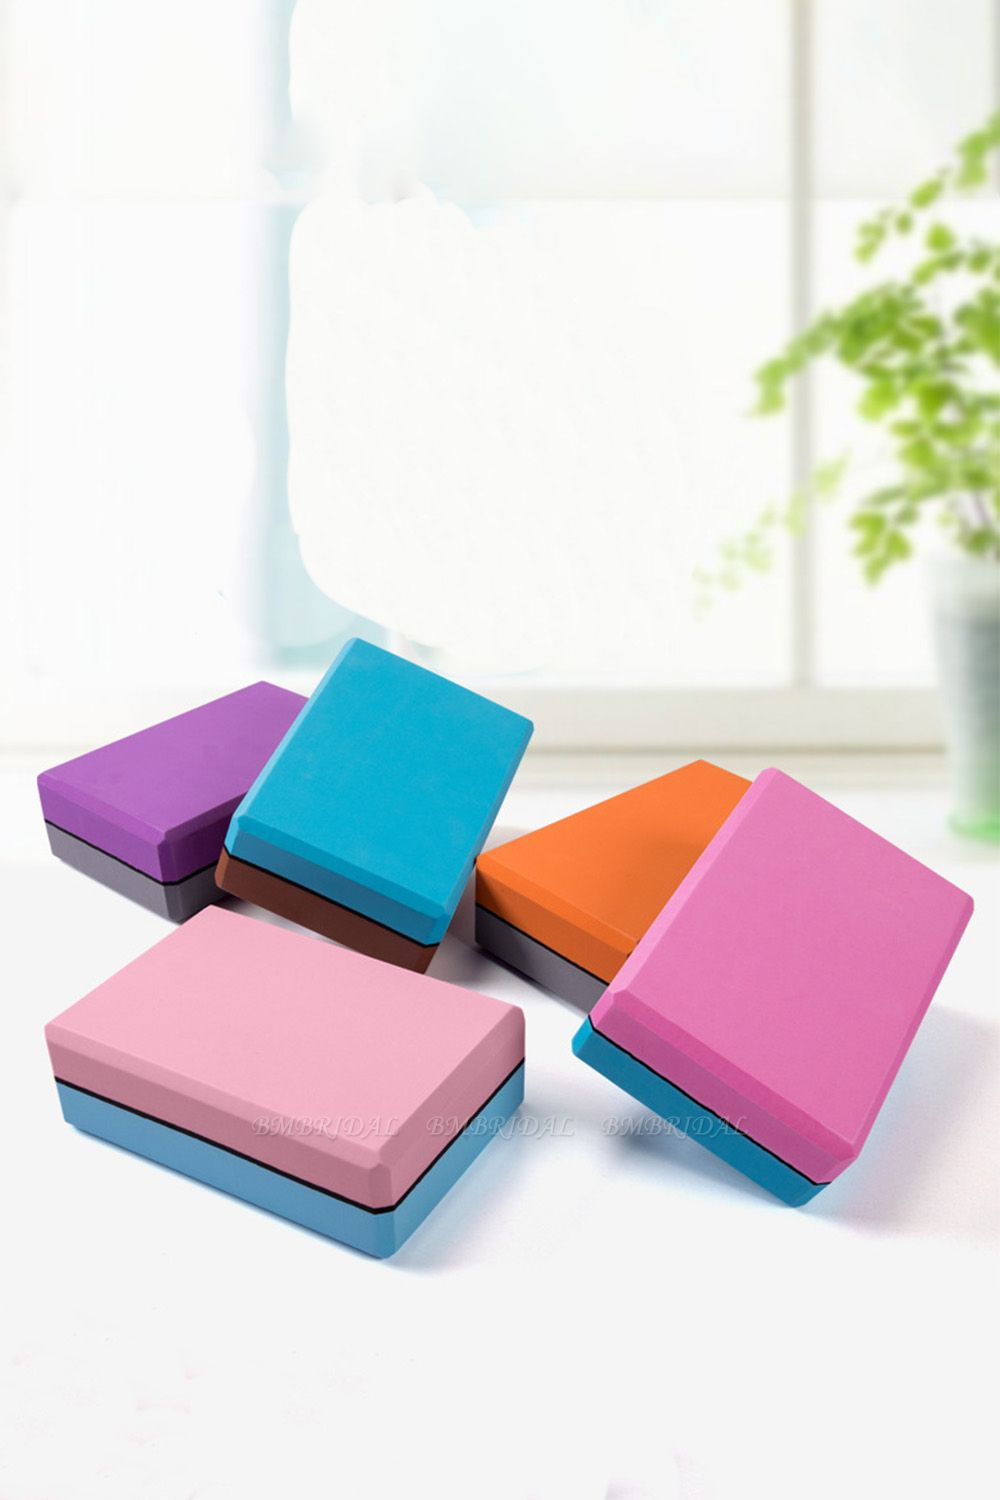 BMbridal High Density EVA Yoga Block Foam Foaming Block Brick Exercises Fitness Tool Workout Stretching Aid Body Shaping Health Training